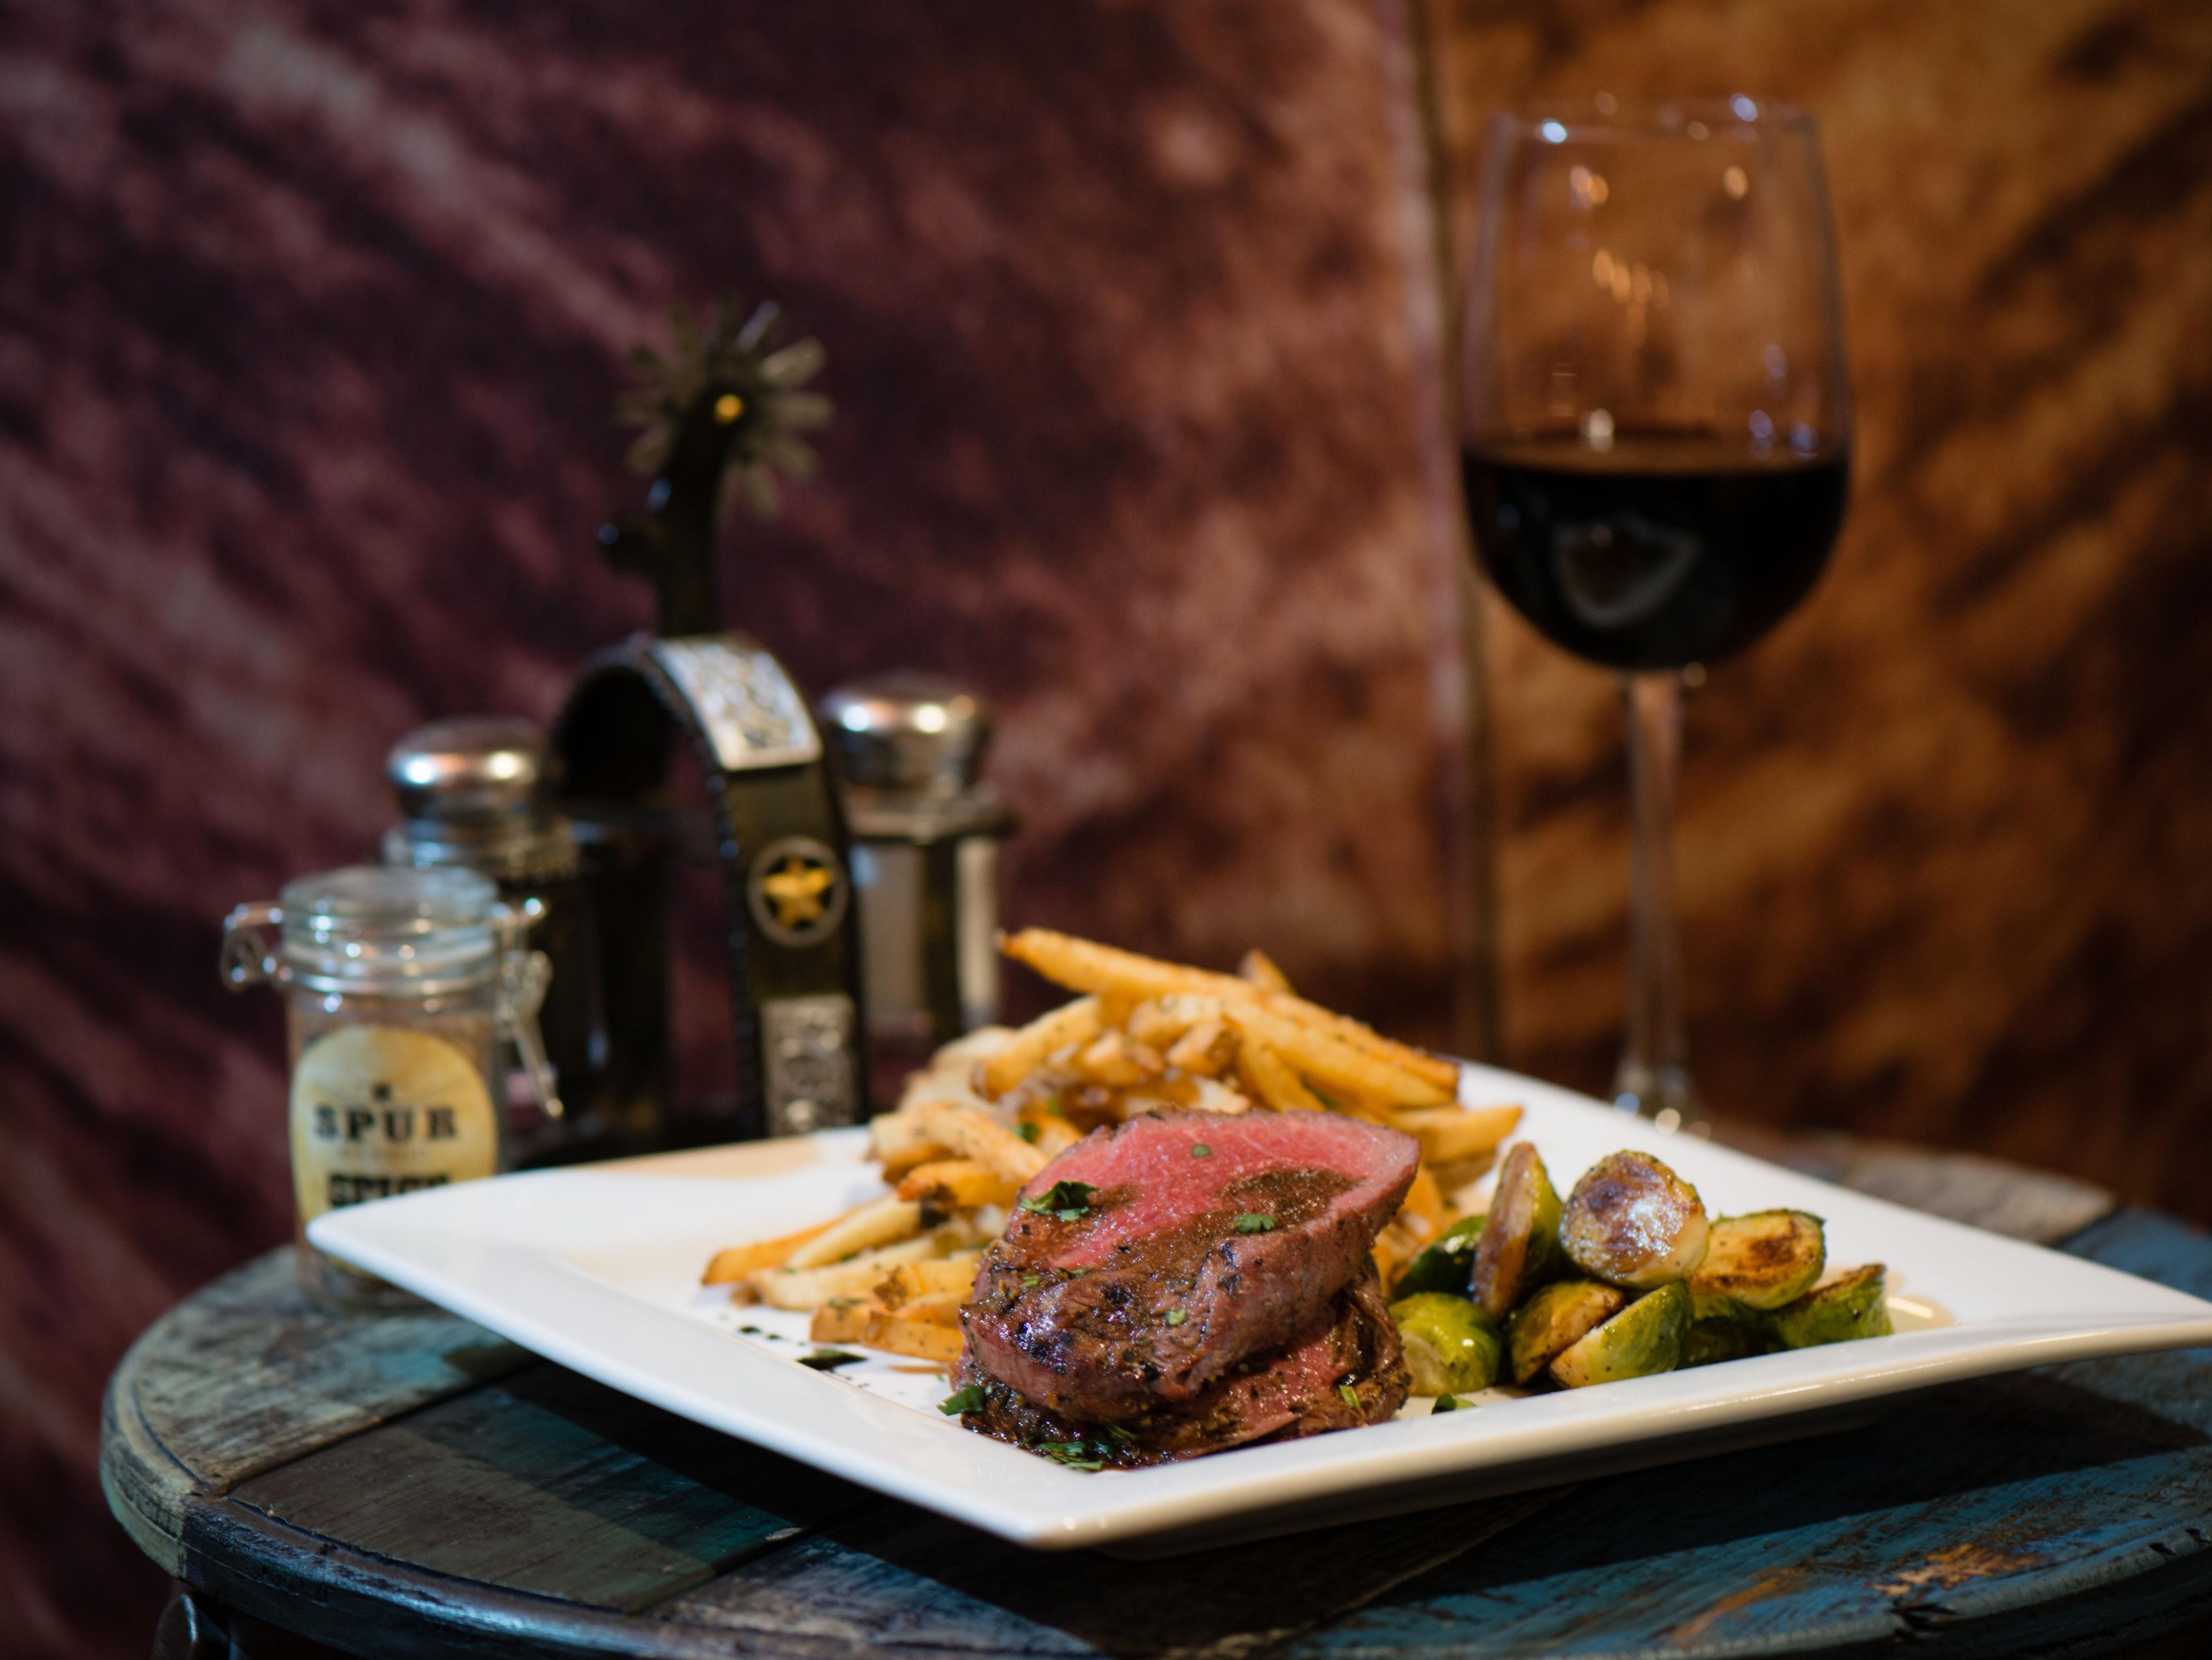 Grilled Steak and Frites